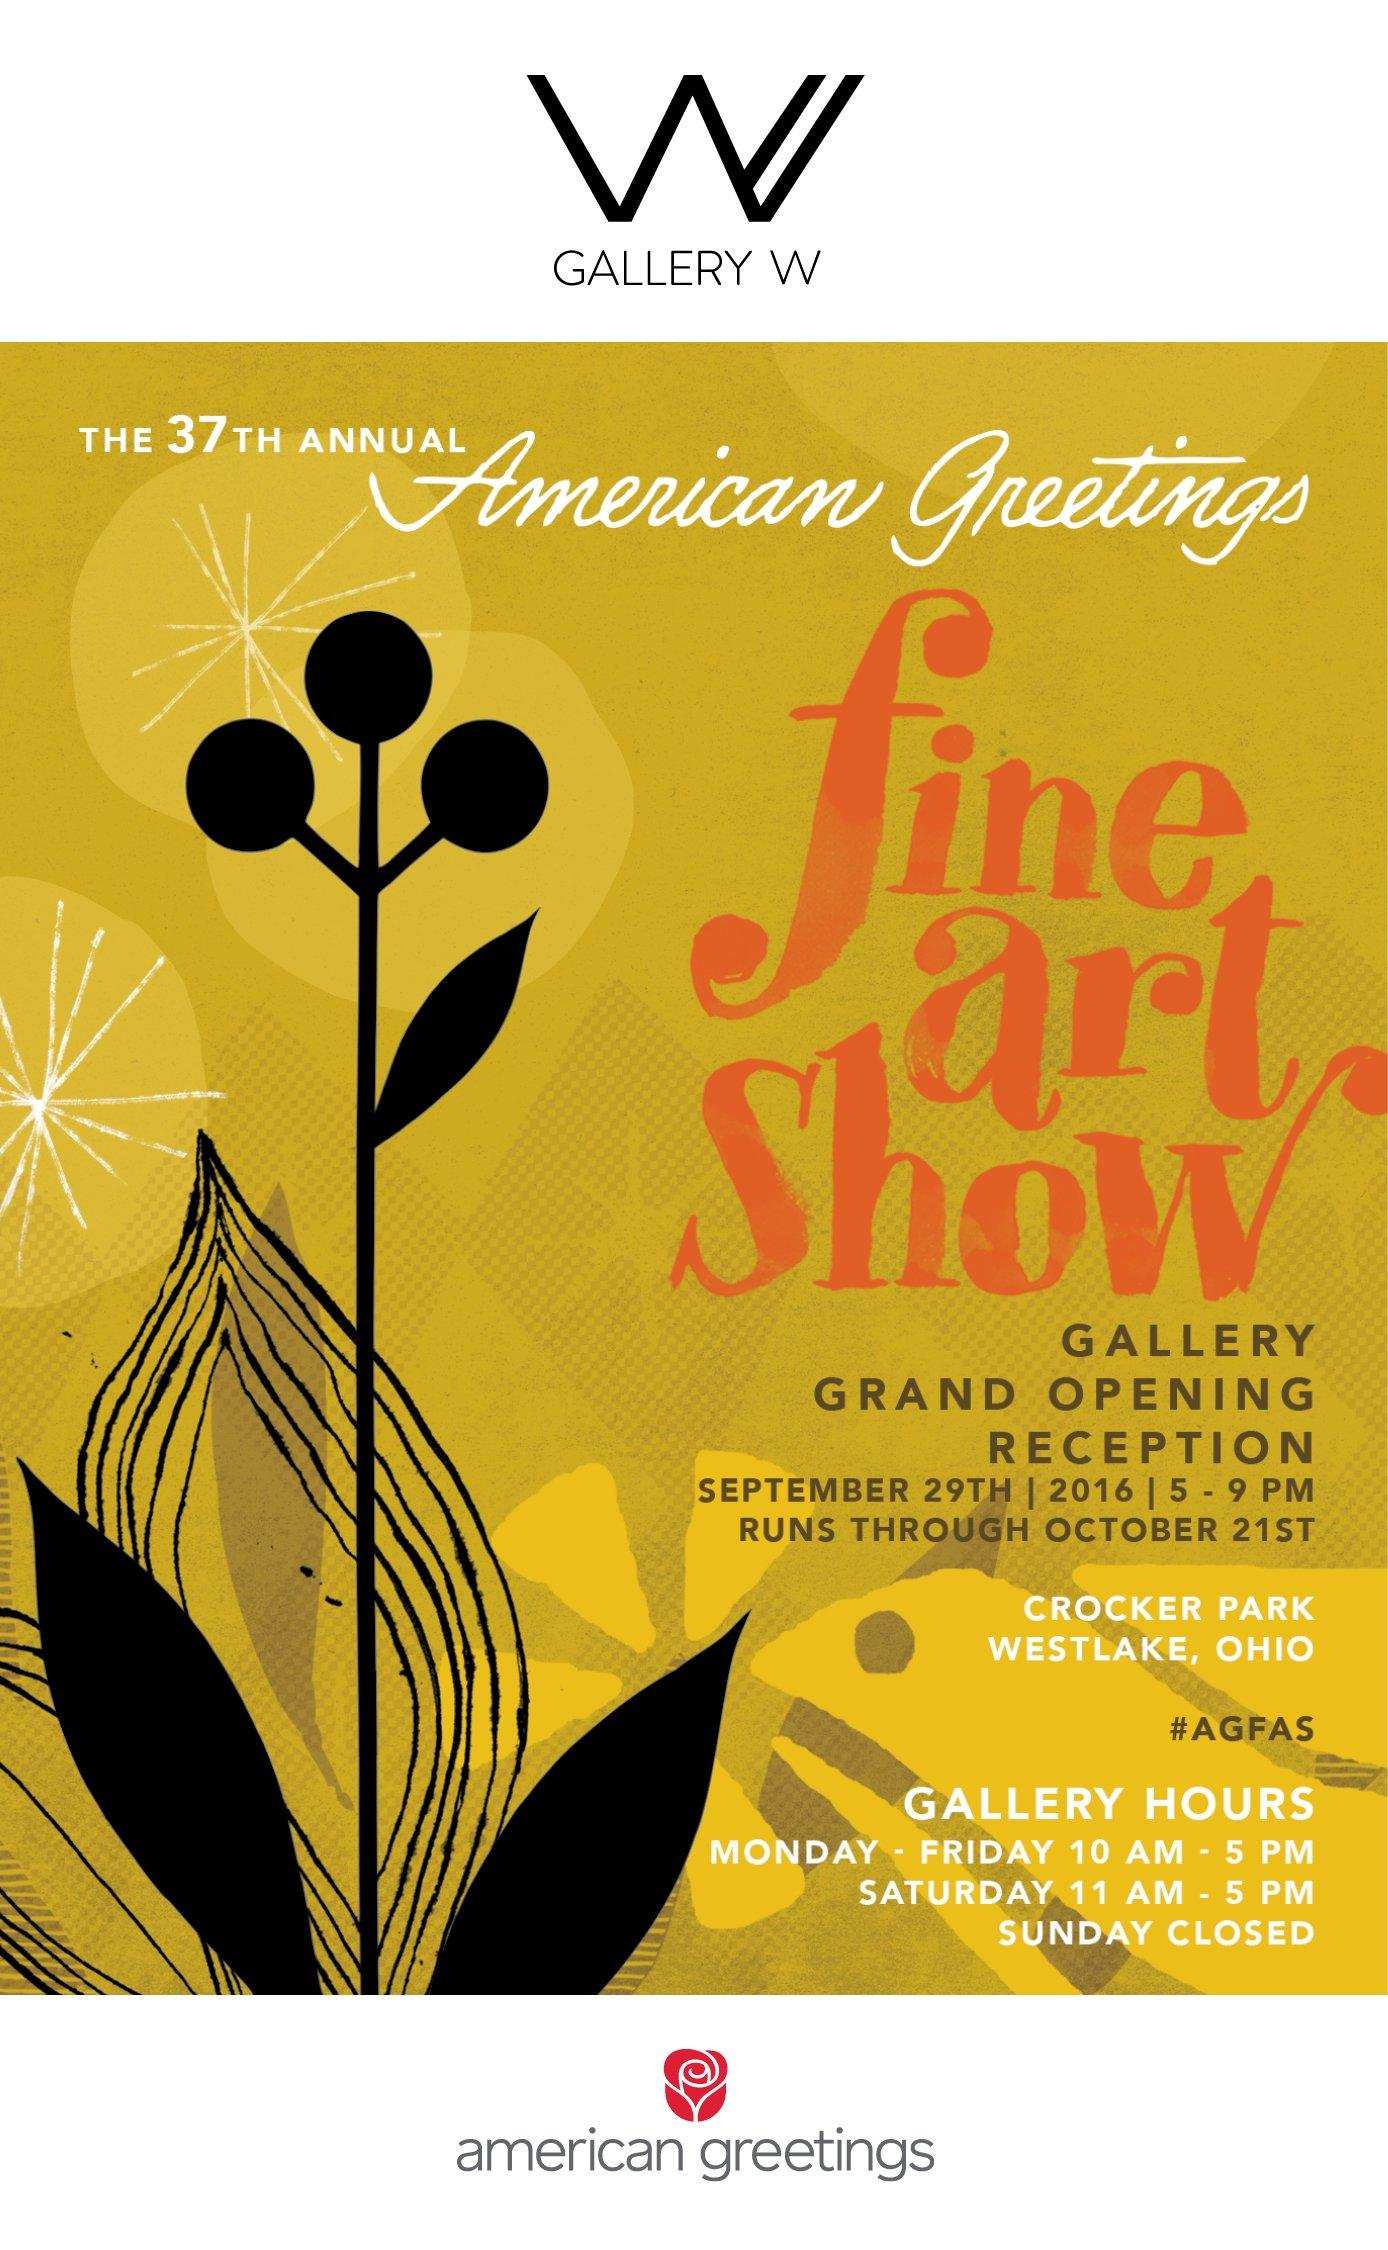 American greetings welcomes the public to gallery w at new creative american greetings welcomes the public to gallery w at new creative studios kristyandbryce Choice Image